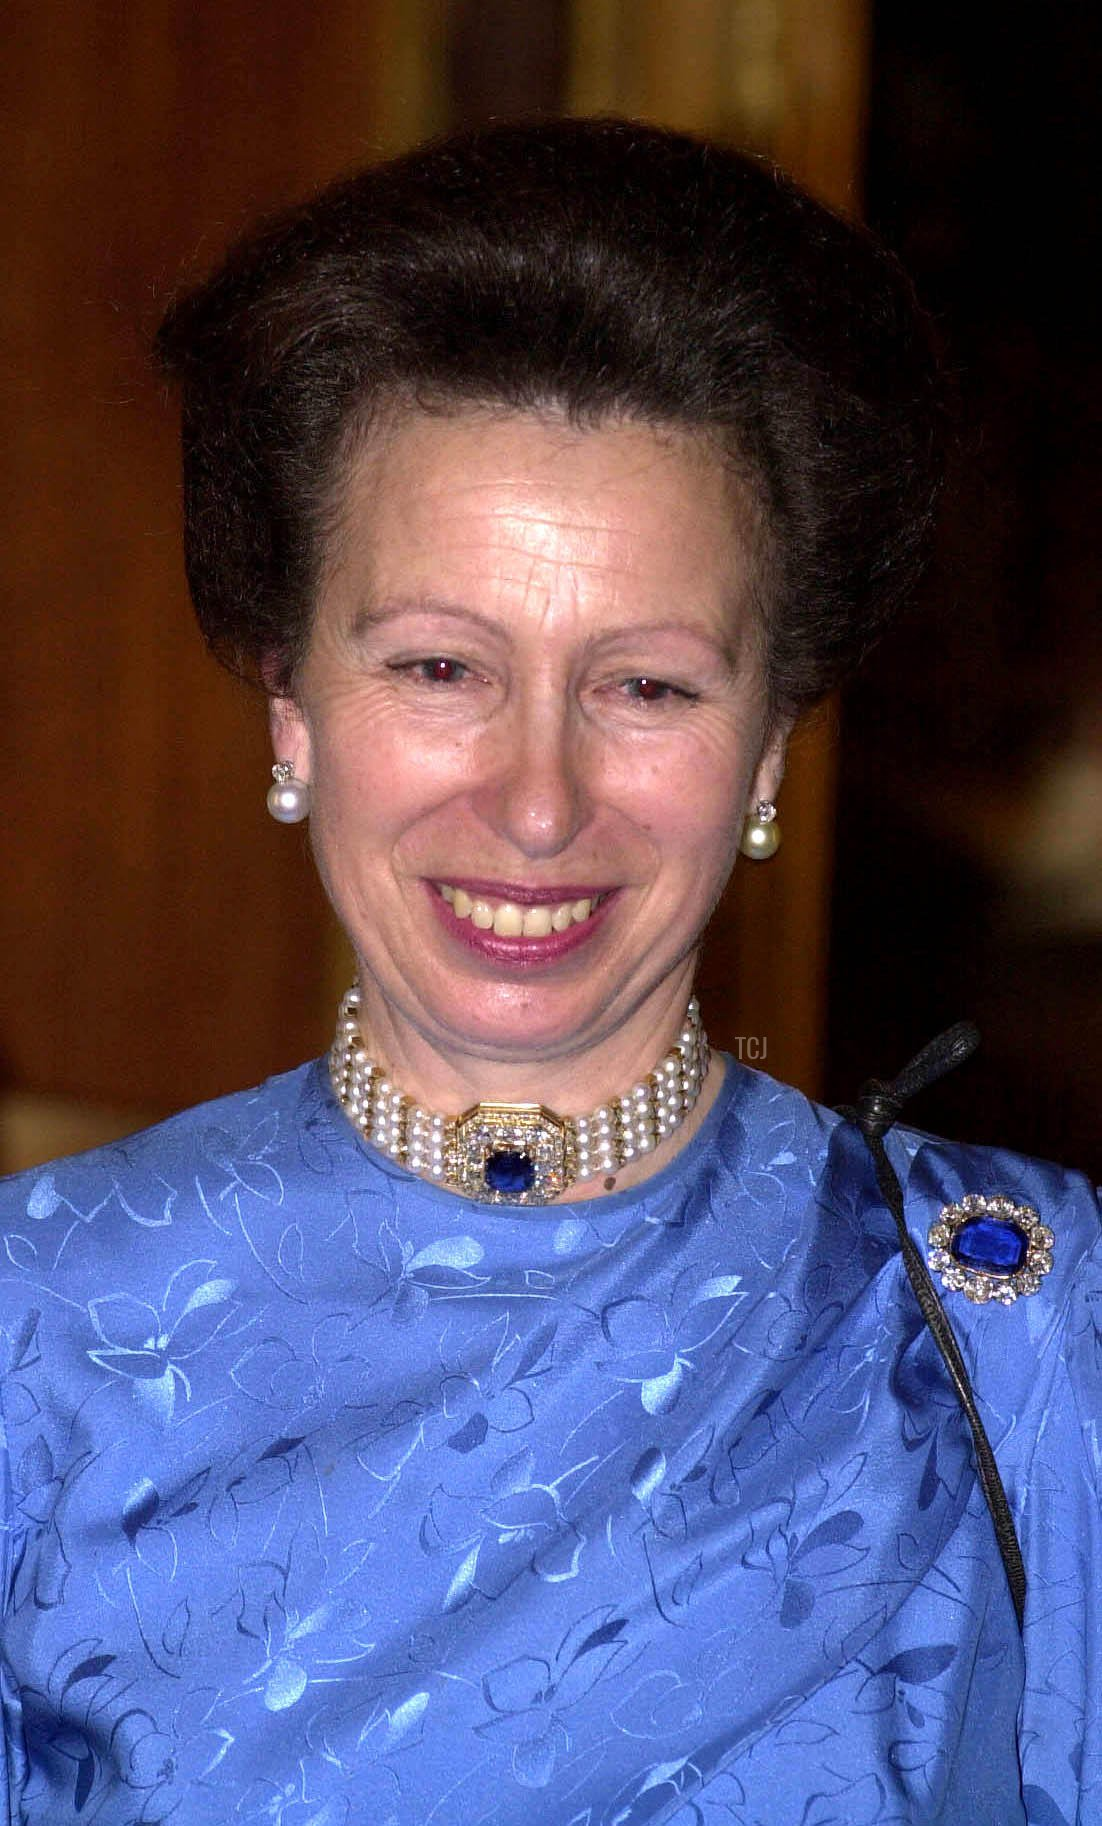 The Queen addresses a party at Windsor Castle, held in honour of The Princess Royal's 50th birthday and attended by guests from charities and organisations for which the Princess is patron, November 2000